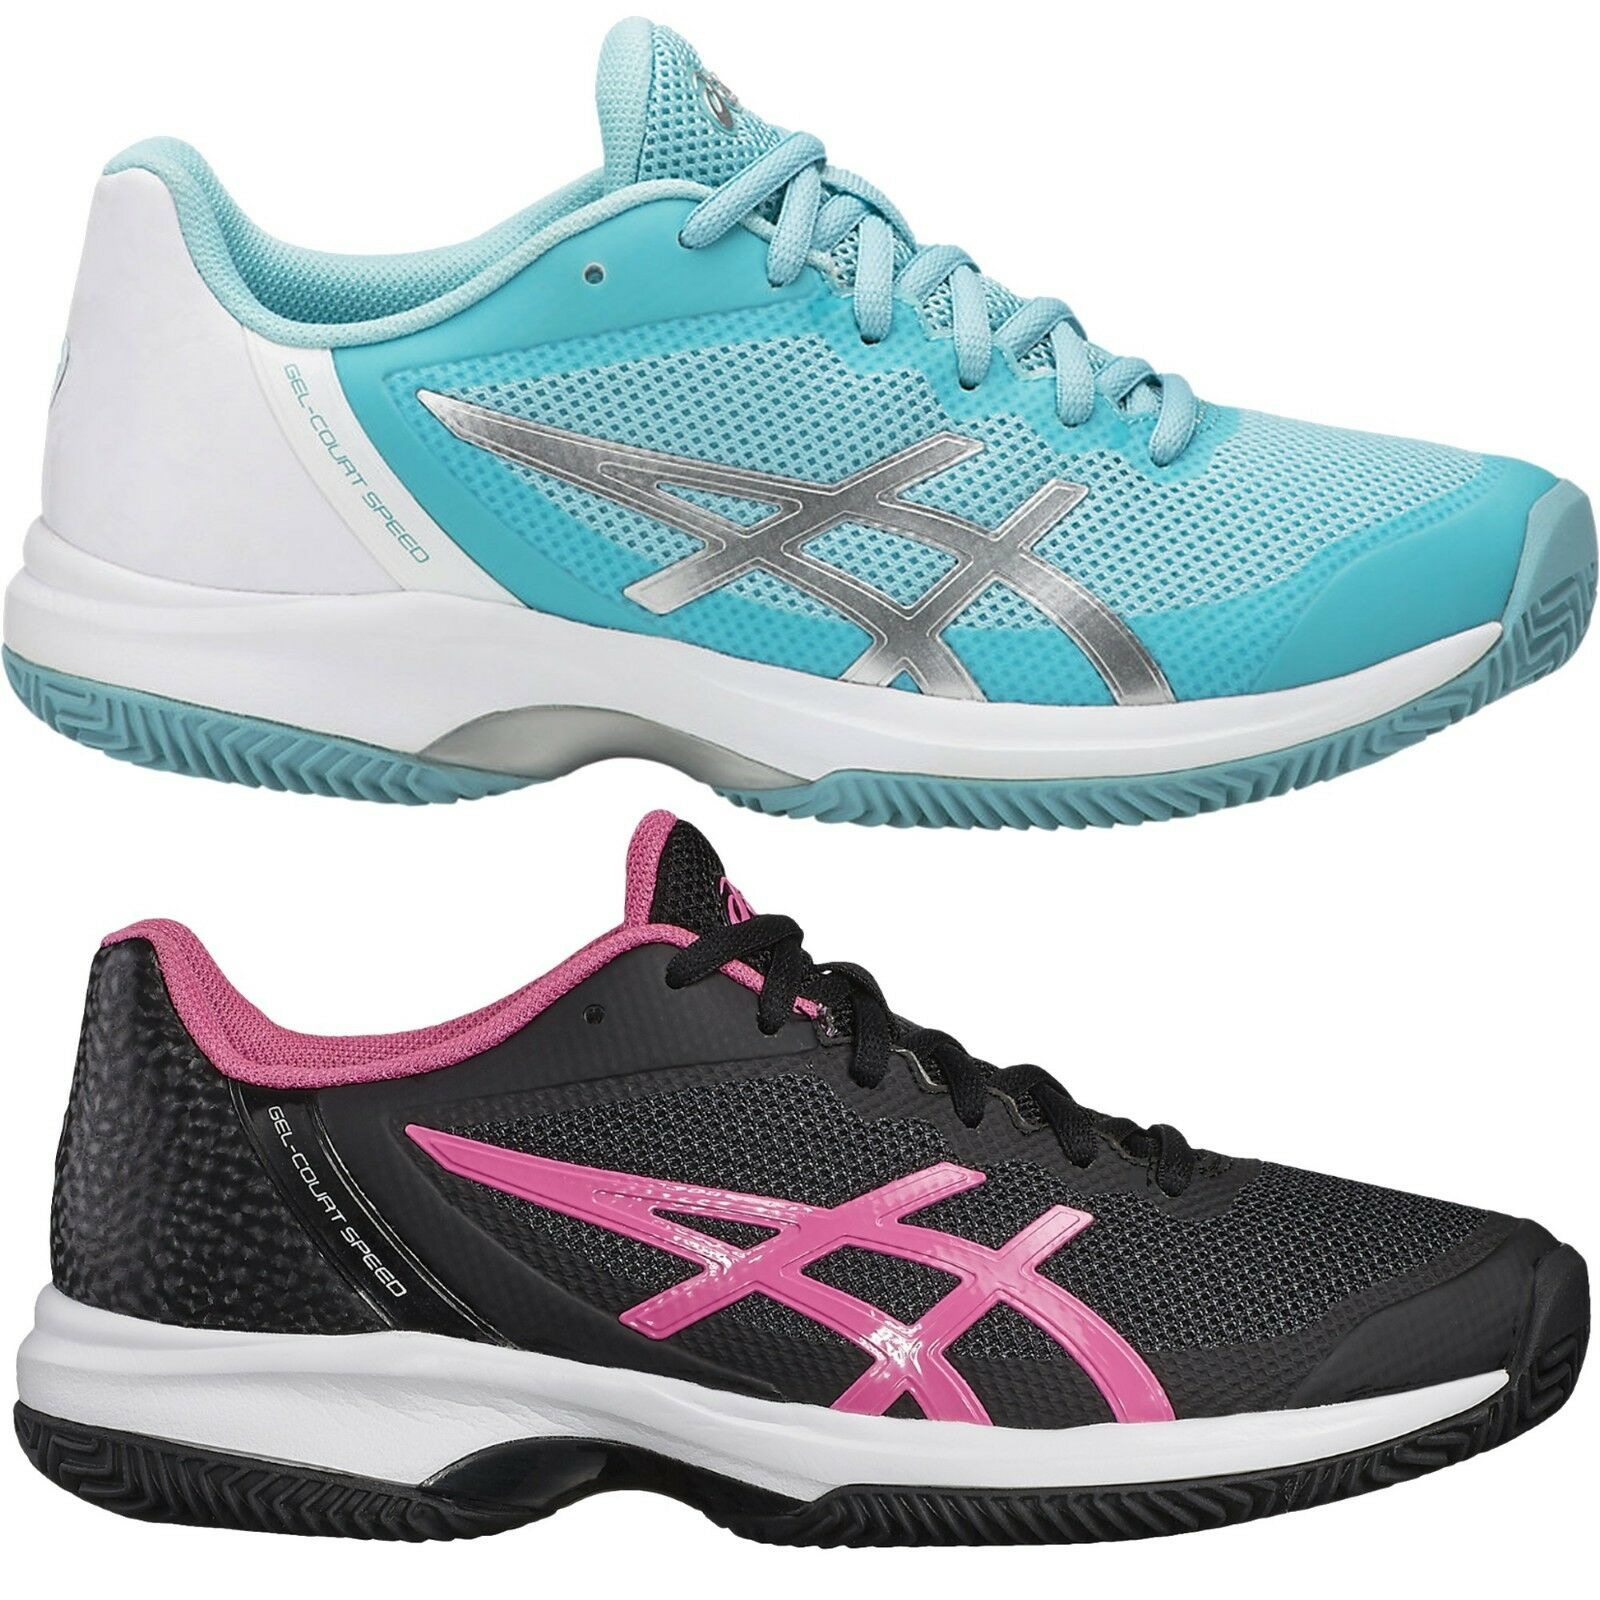 Asics GEL-COURT GEL-COURT GEL-COURT SPEED CLAY Damen Outdoor Tennisschuhe E851N hellblau schwarz 9eb464